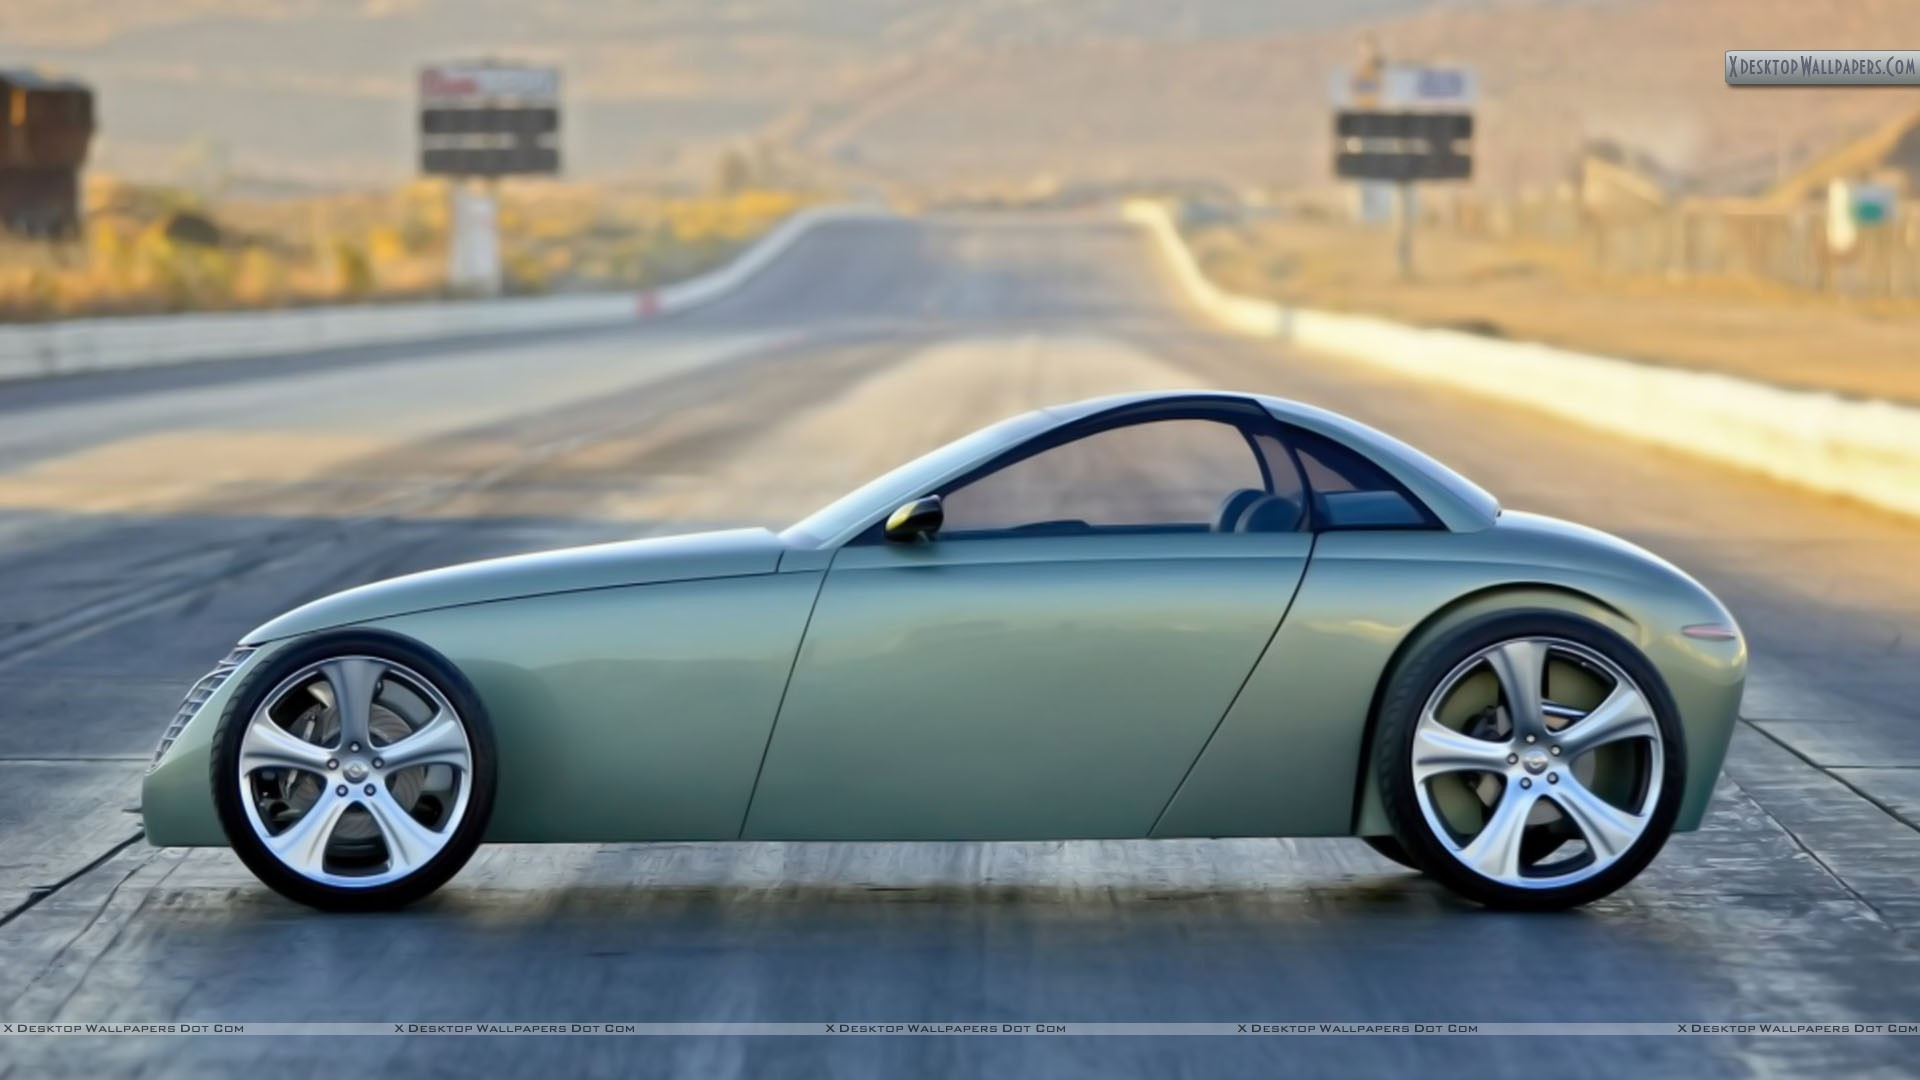 Concept Cars Wallpapers Photos Images In HD